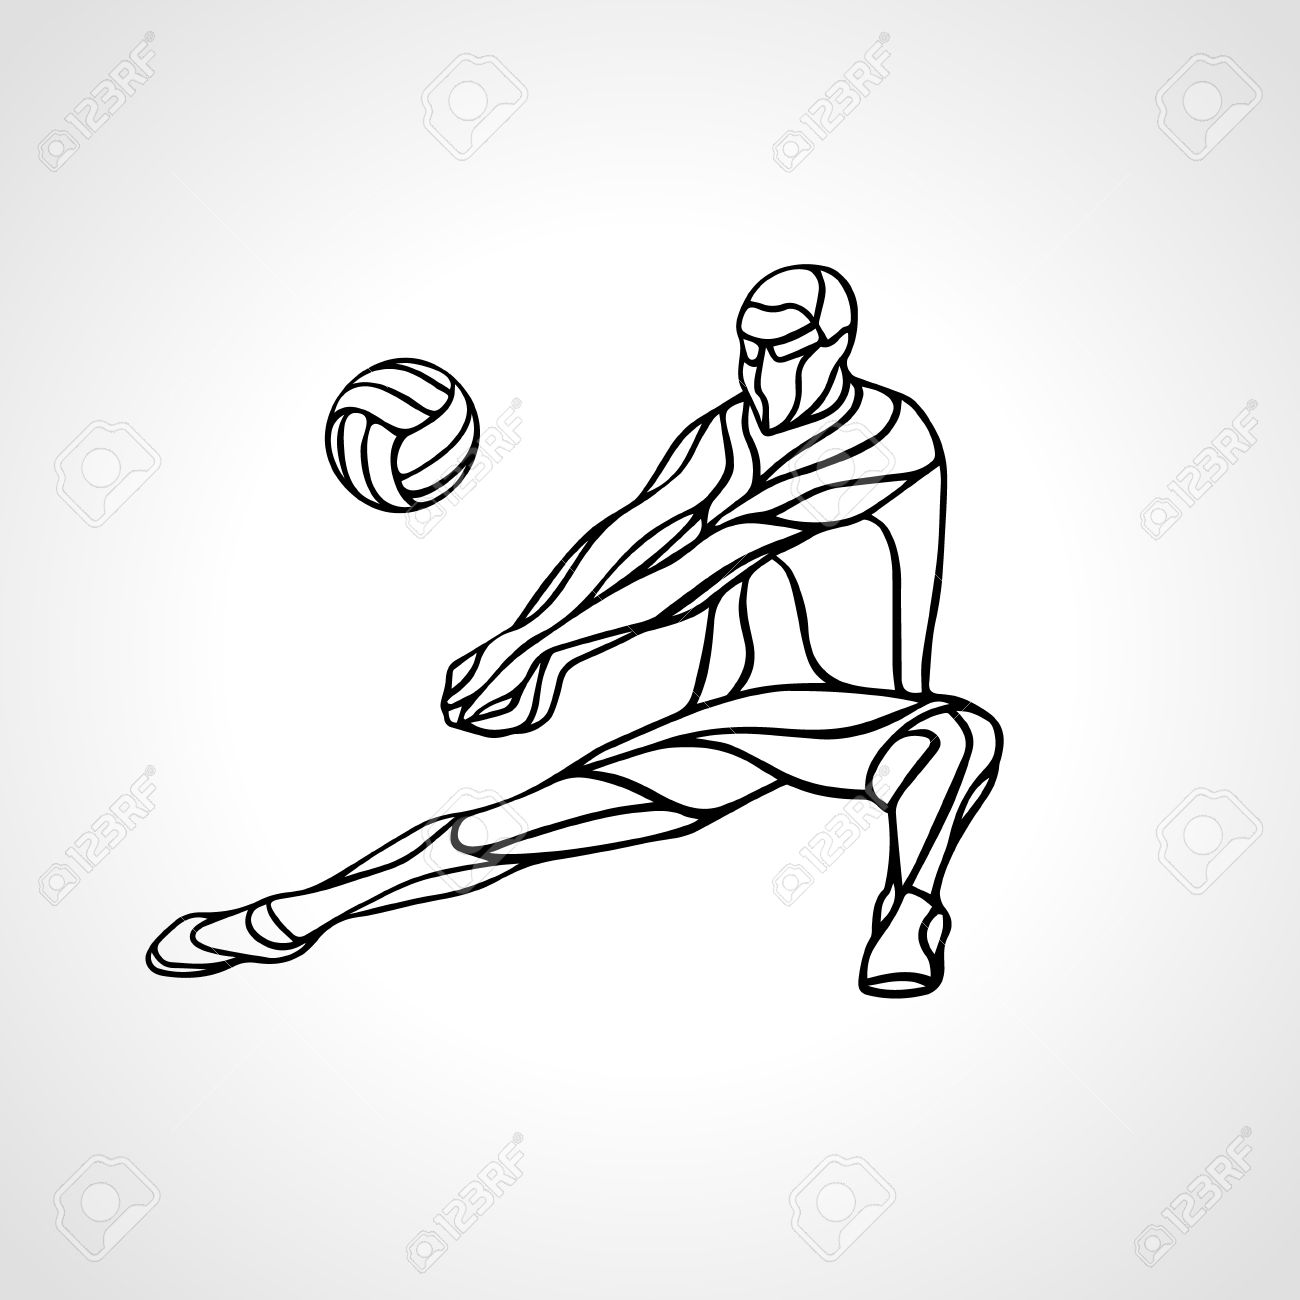 Volleyball Player Receiving Feed Outline Silhouette Of A Abstract Royalty Free Cliparts Vectors And Stock Illustration Image 55873989